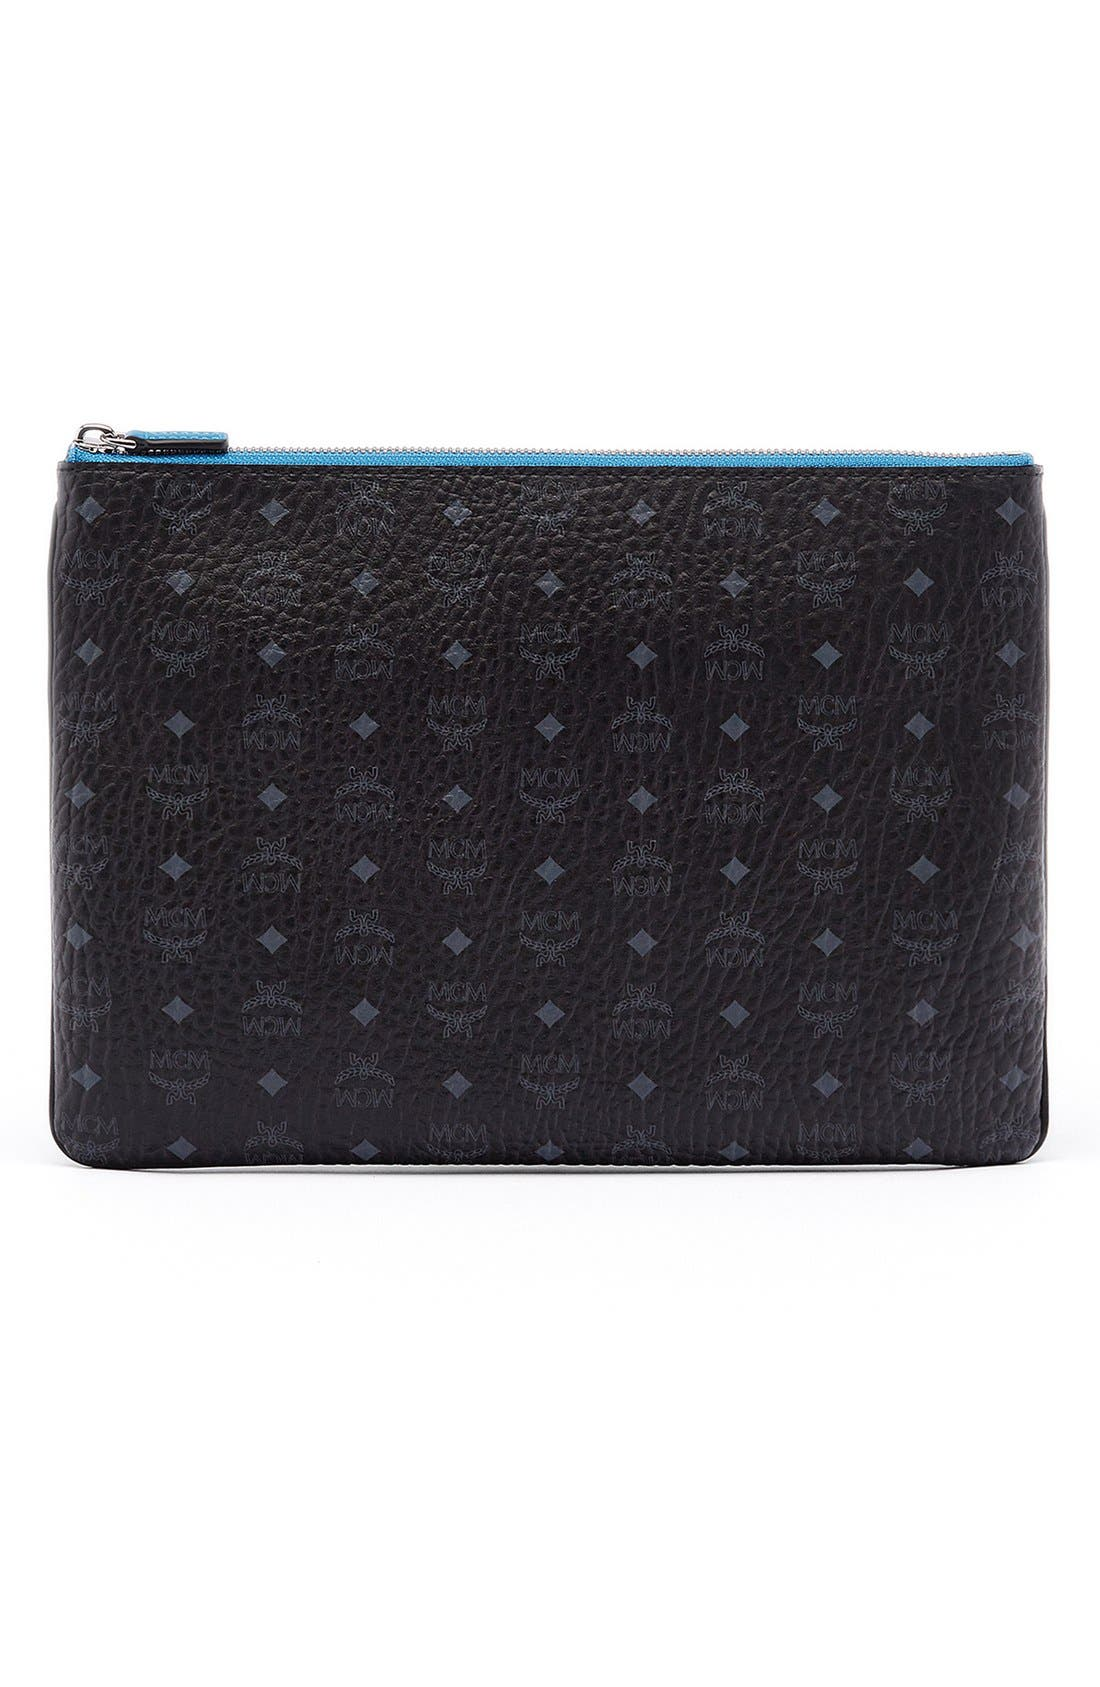 Main Image - MCM 'Heritage' Convertible Coated Canvas Zip Pouch